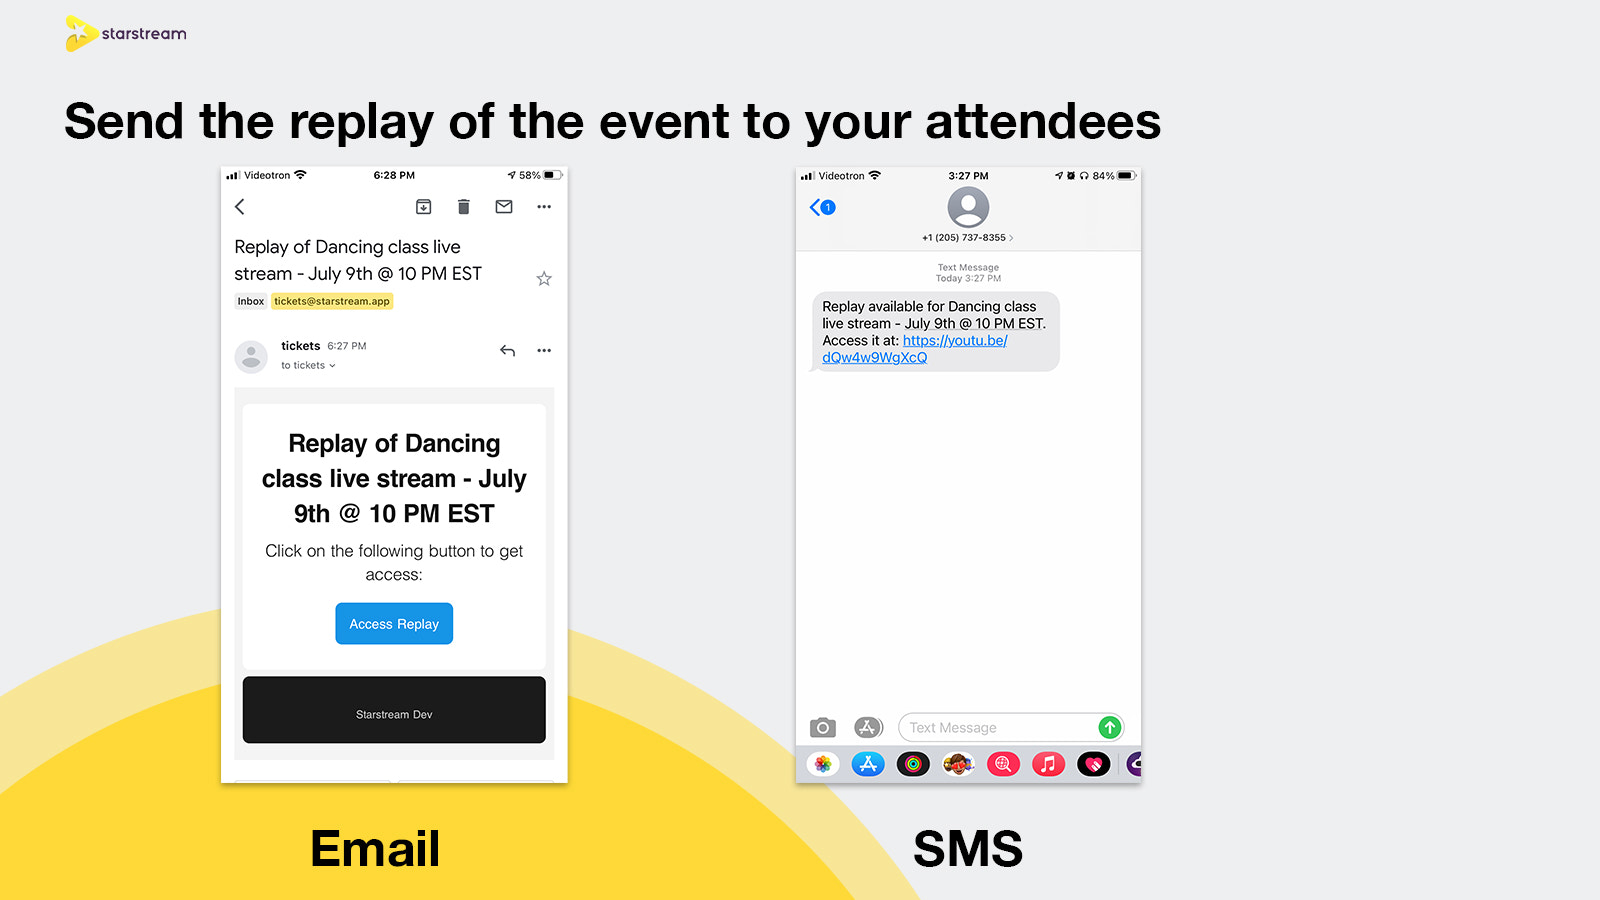 Send the replay of the event to your attendees